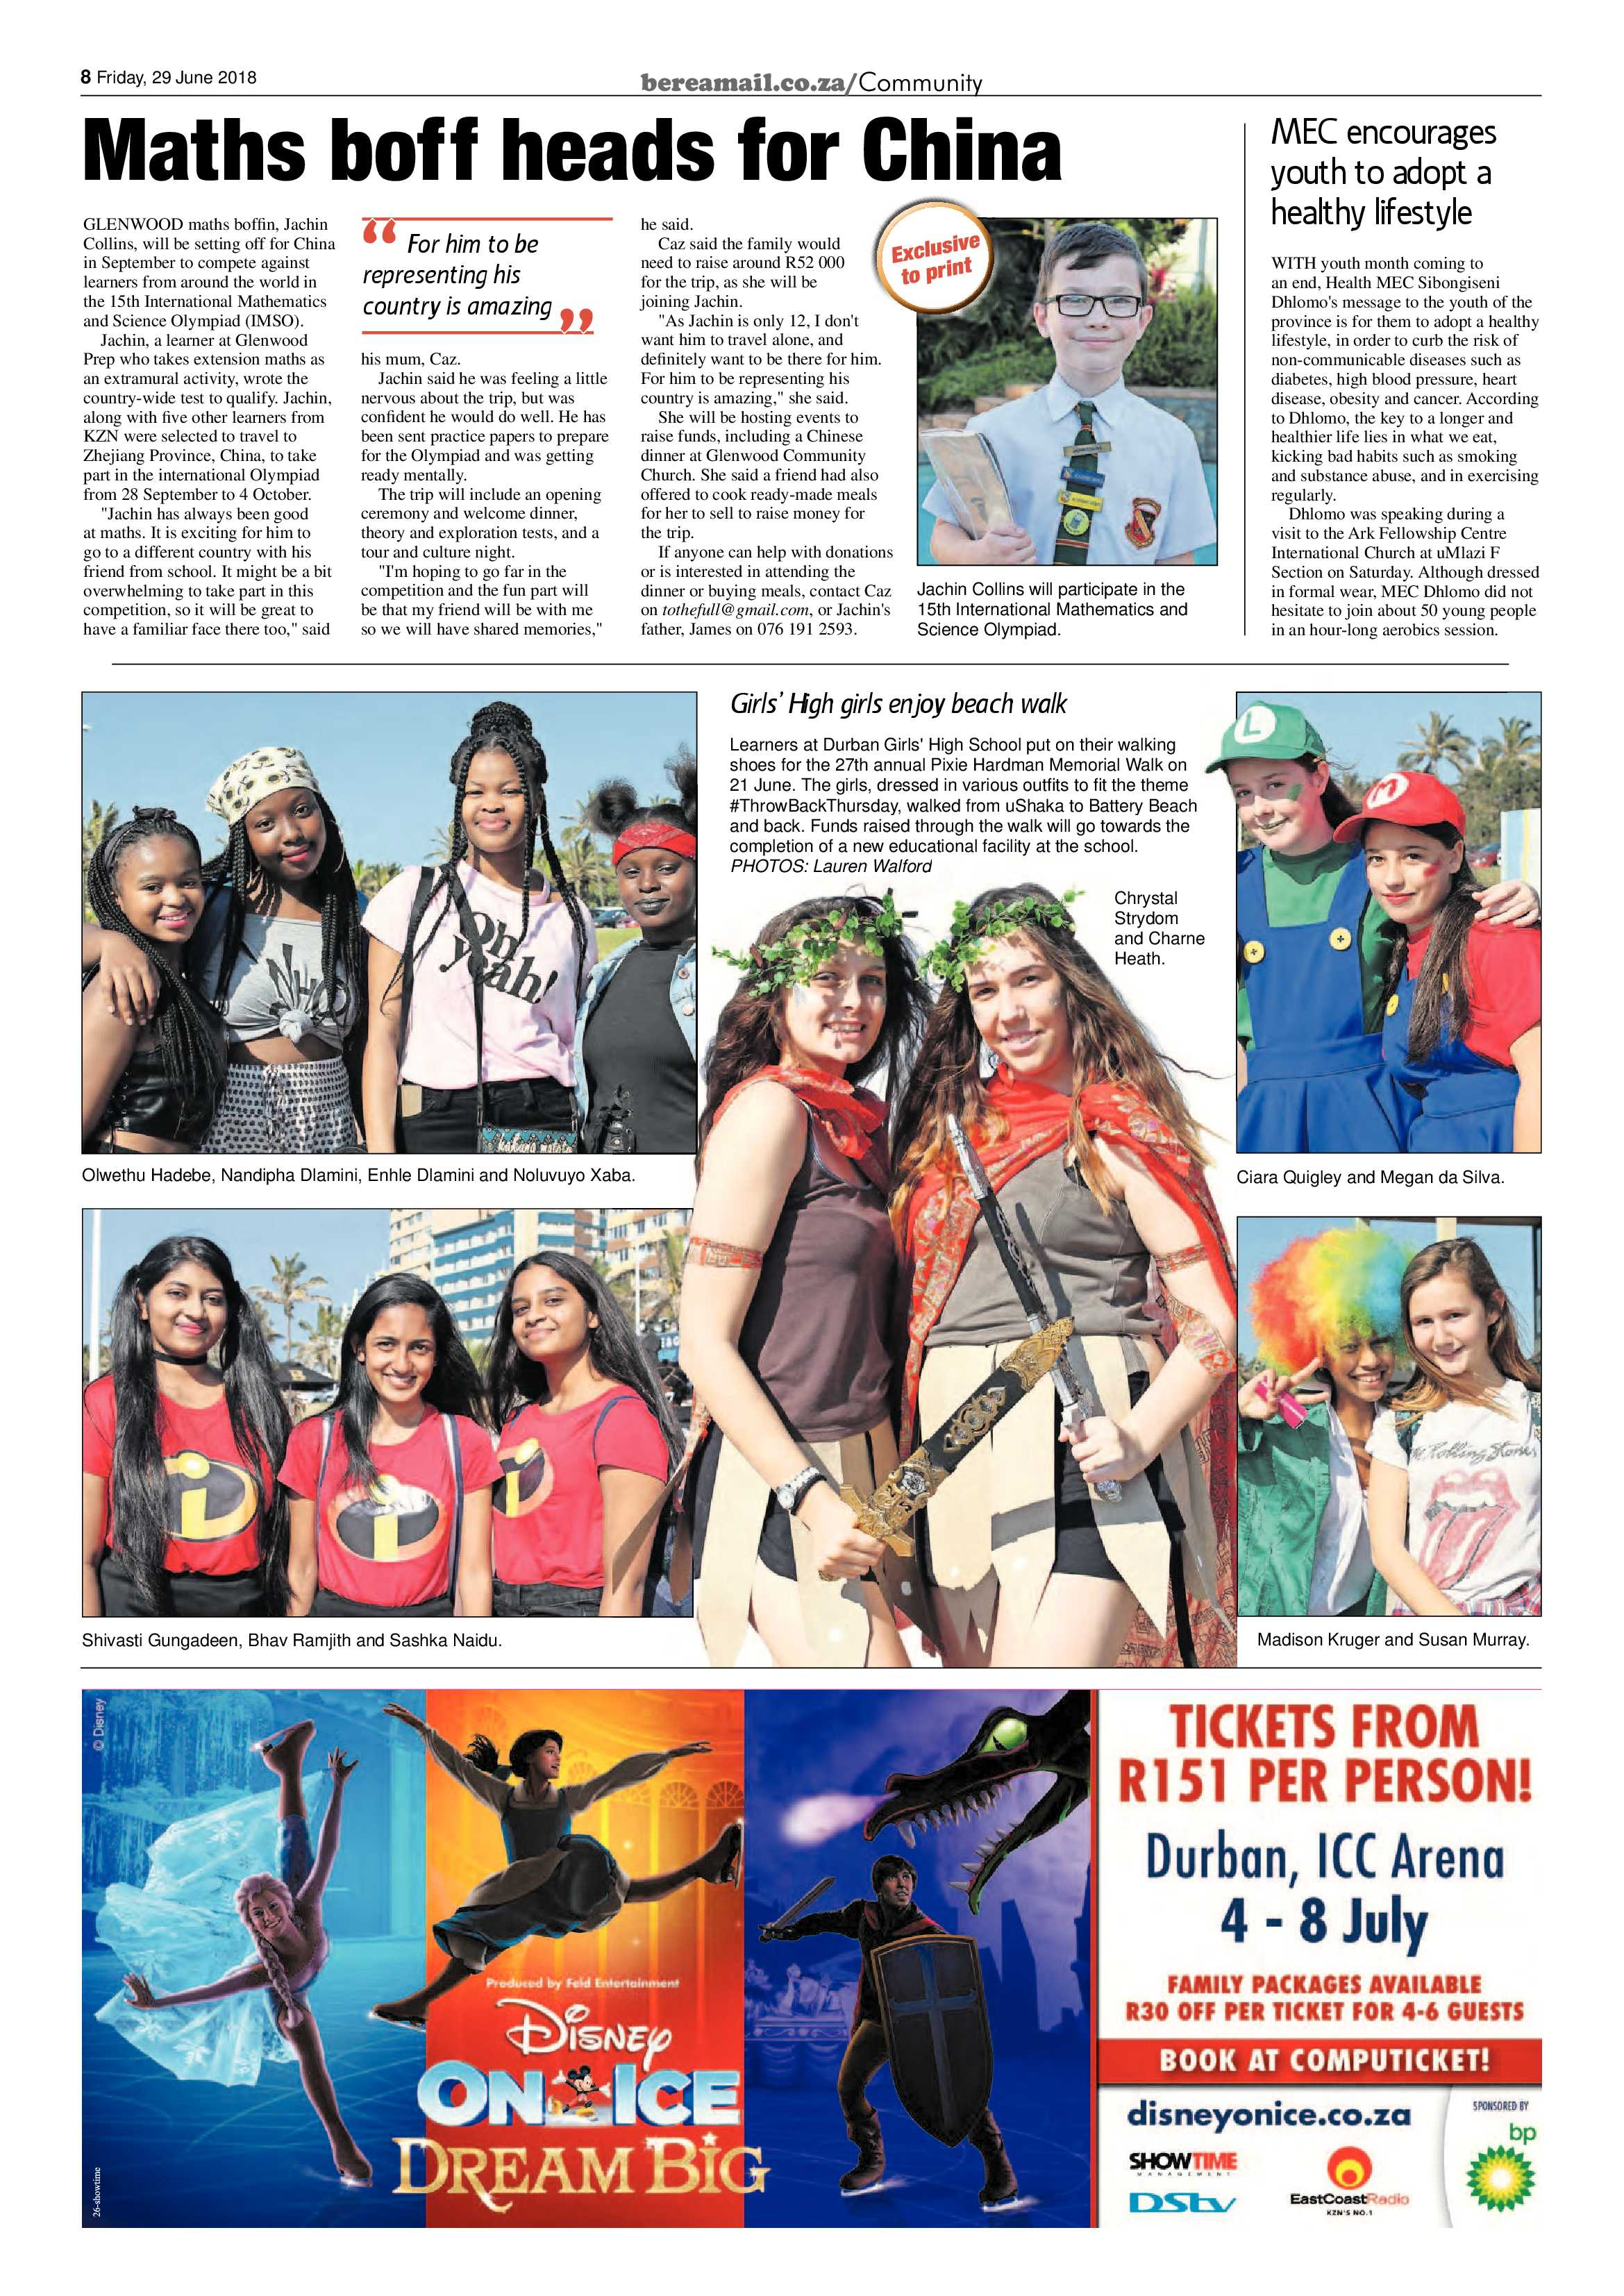 berea-mail-29-june-2018-epapers-page-8